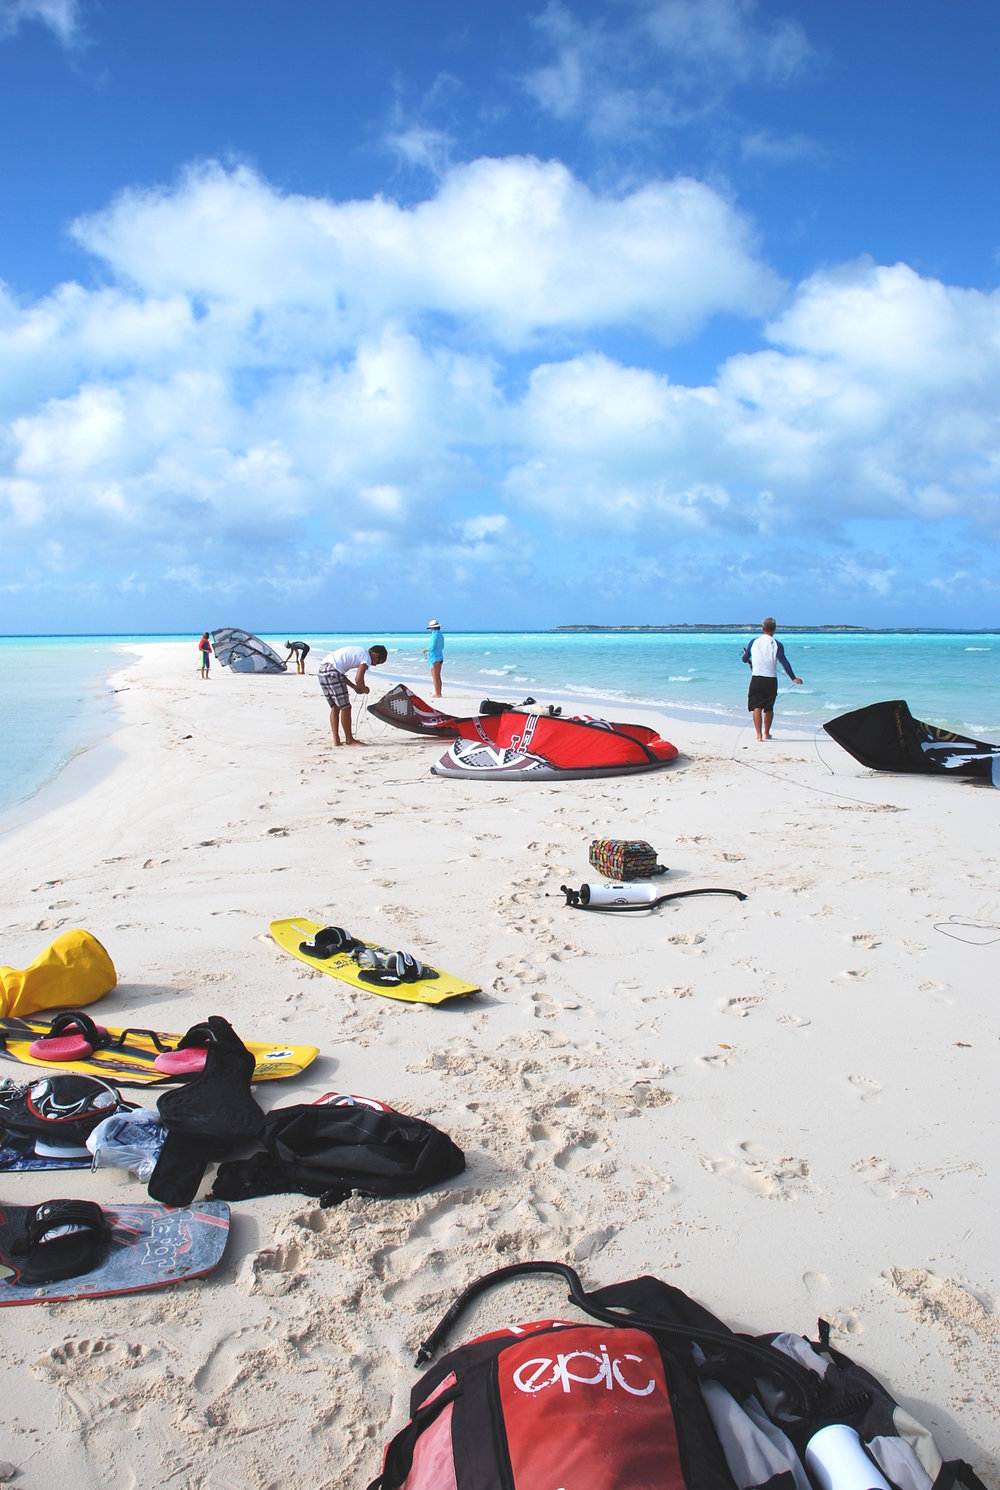 Setting up for a beautiful session at a sandbar in The Exumas